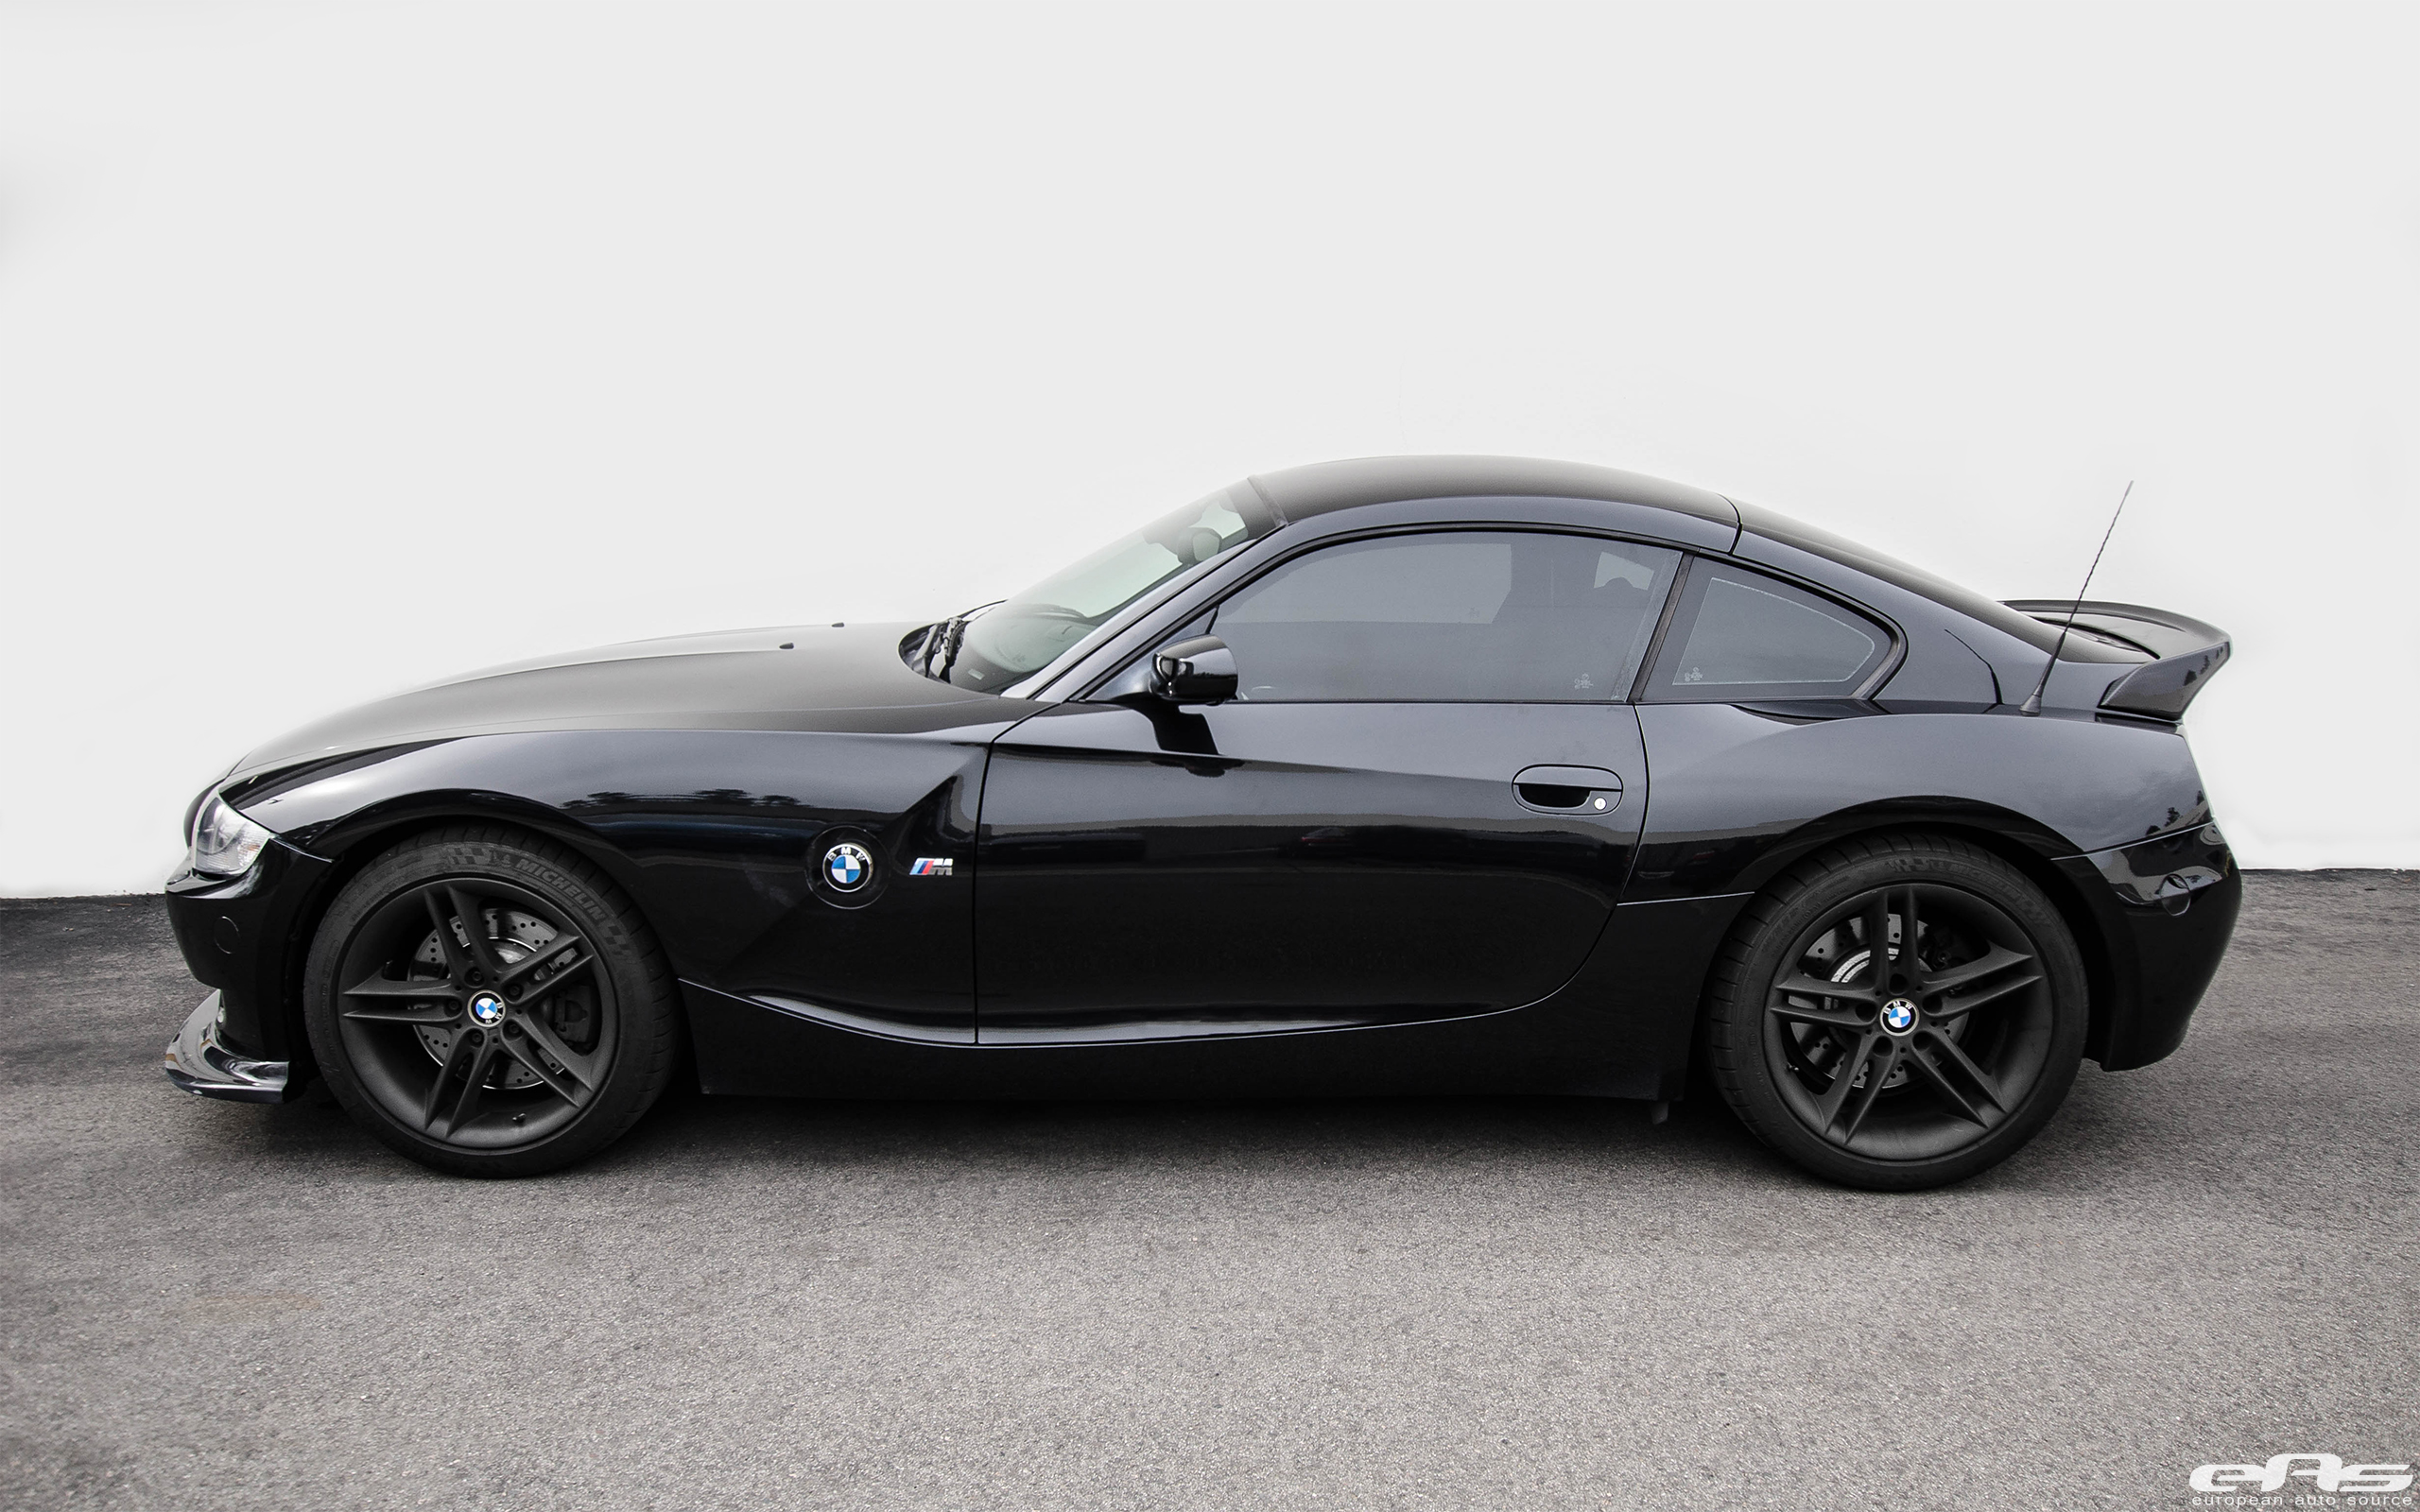 Bmw E86 Z4m Sparco Upgrade Bmw Performance Parts Amp Services